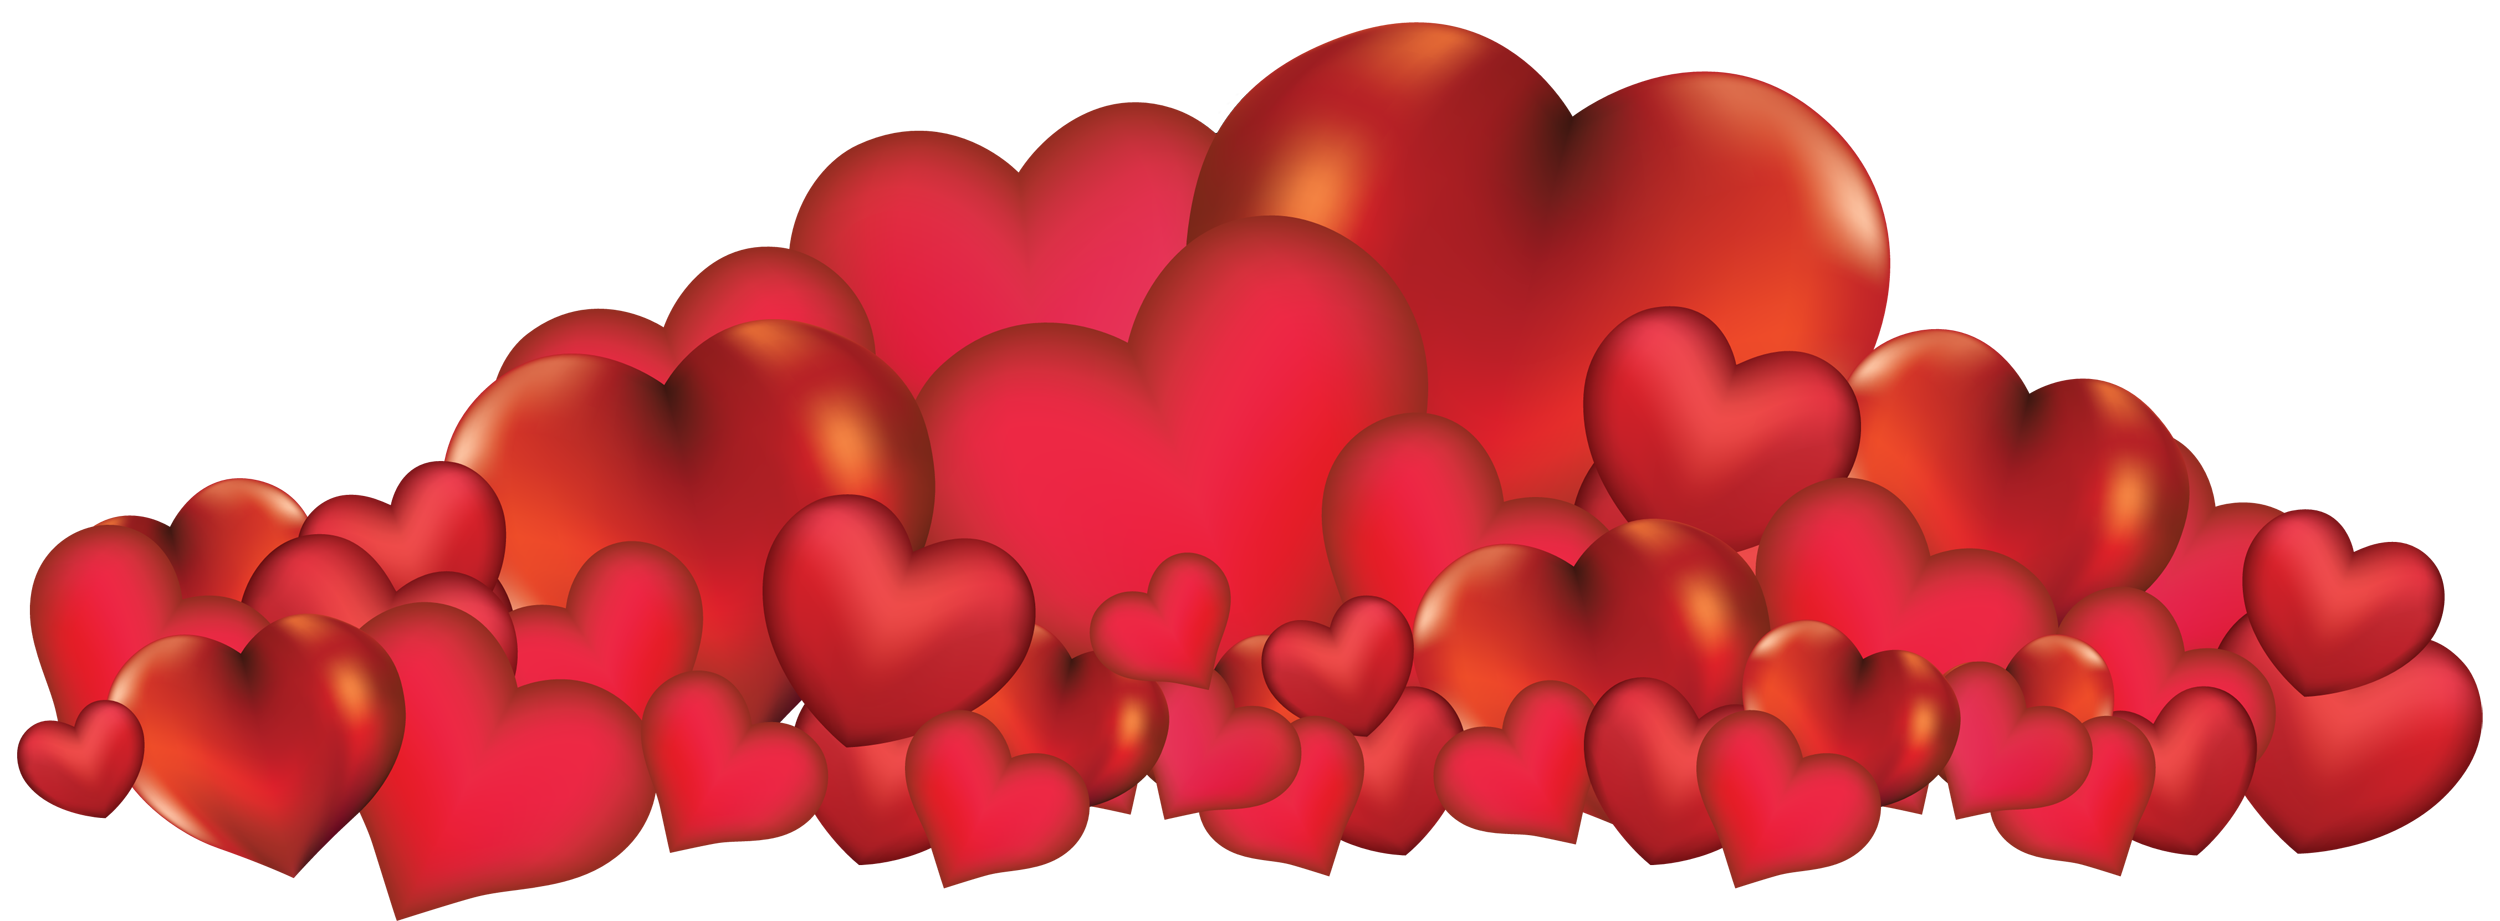 Hearts clipart bunch Full Yopriceville PNG size